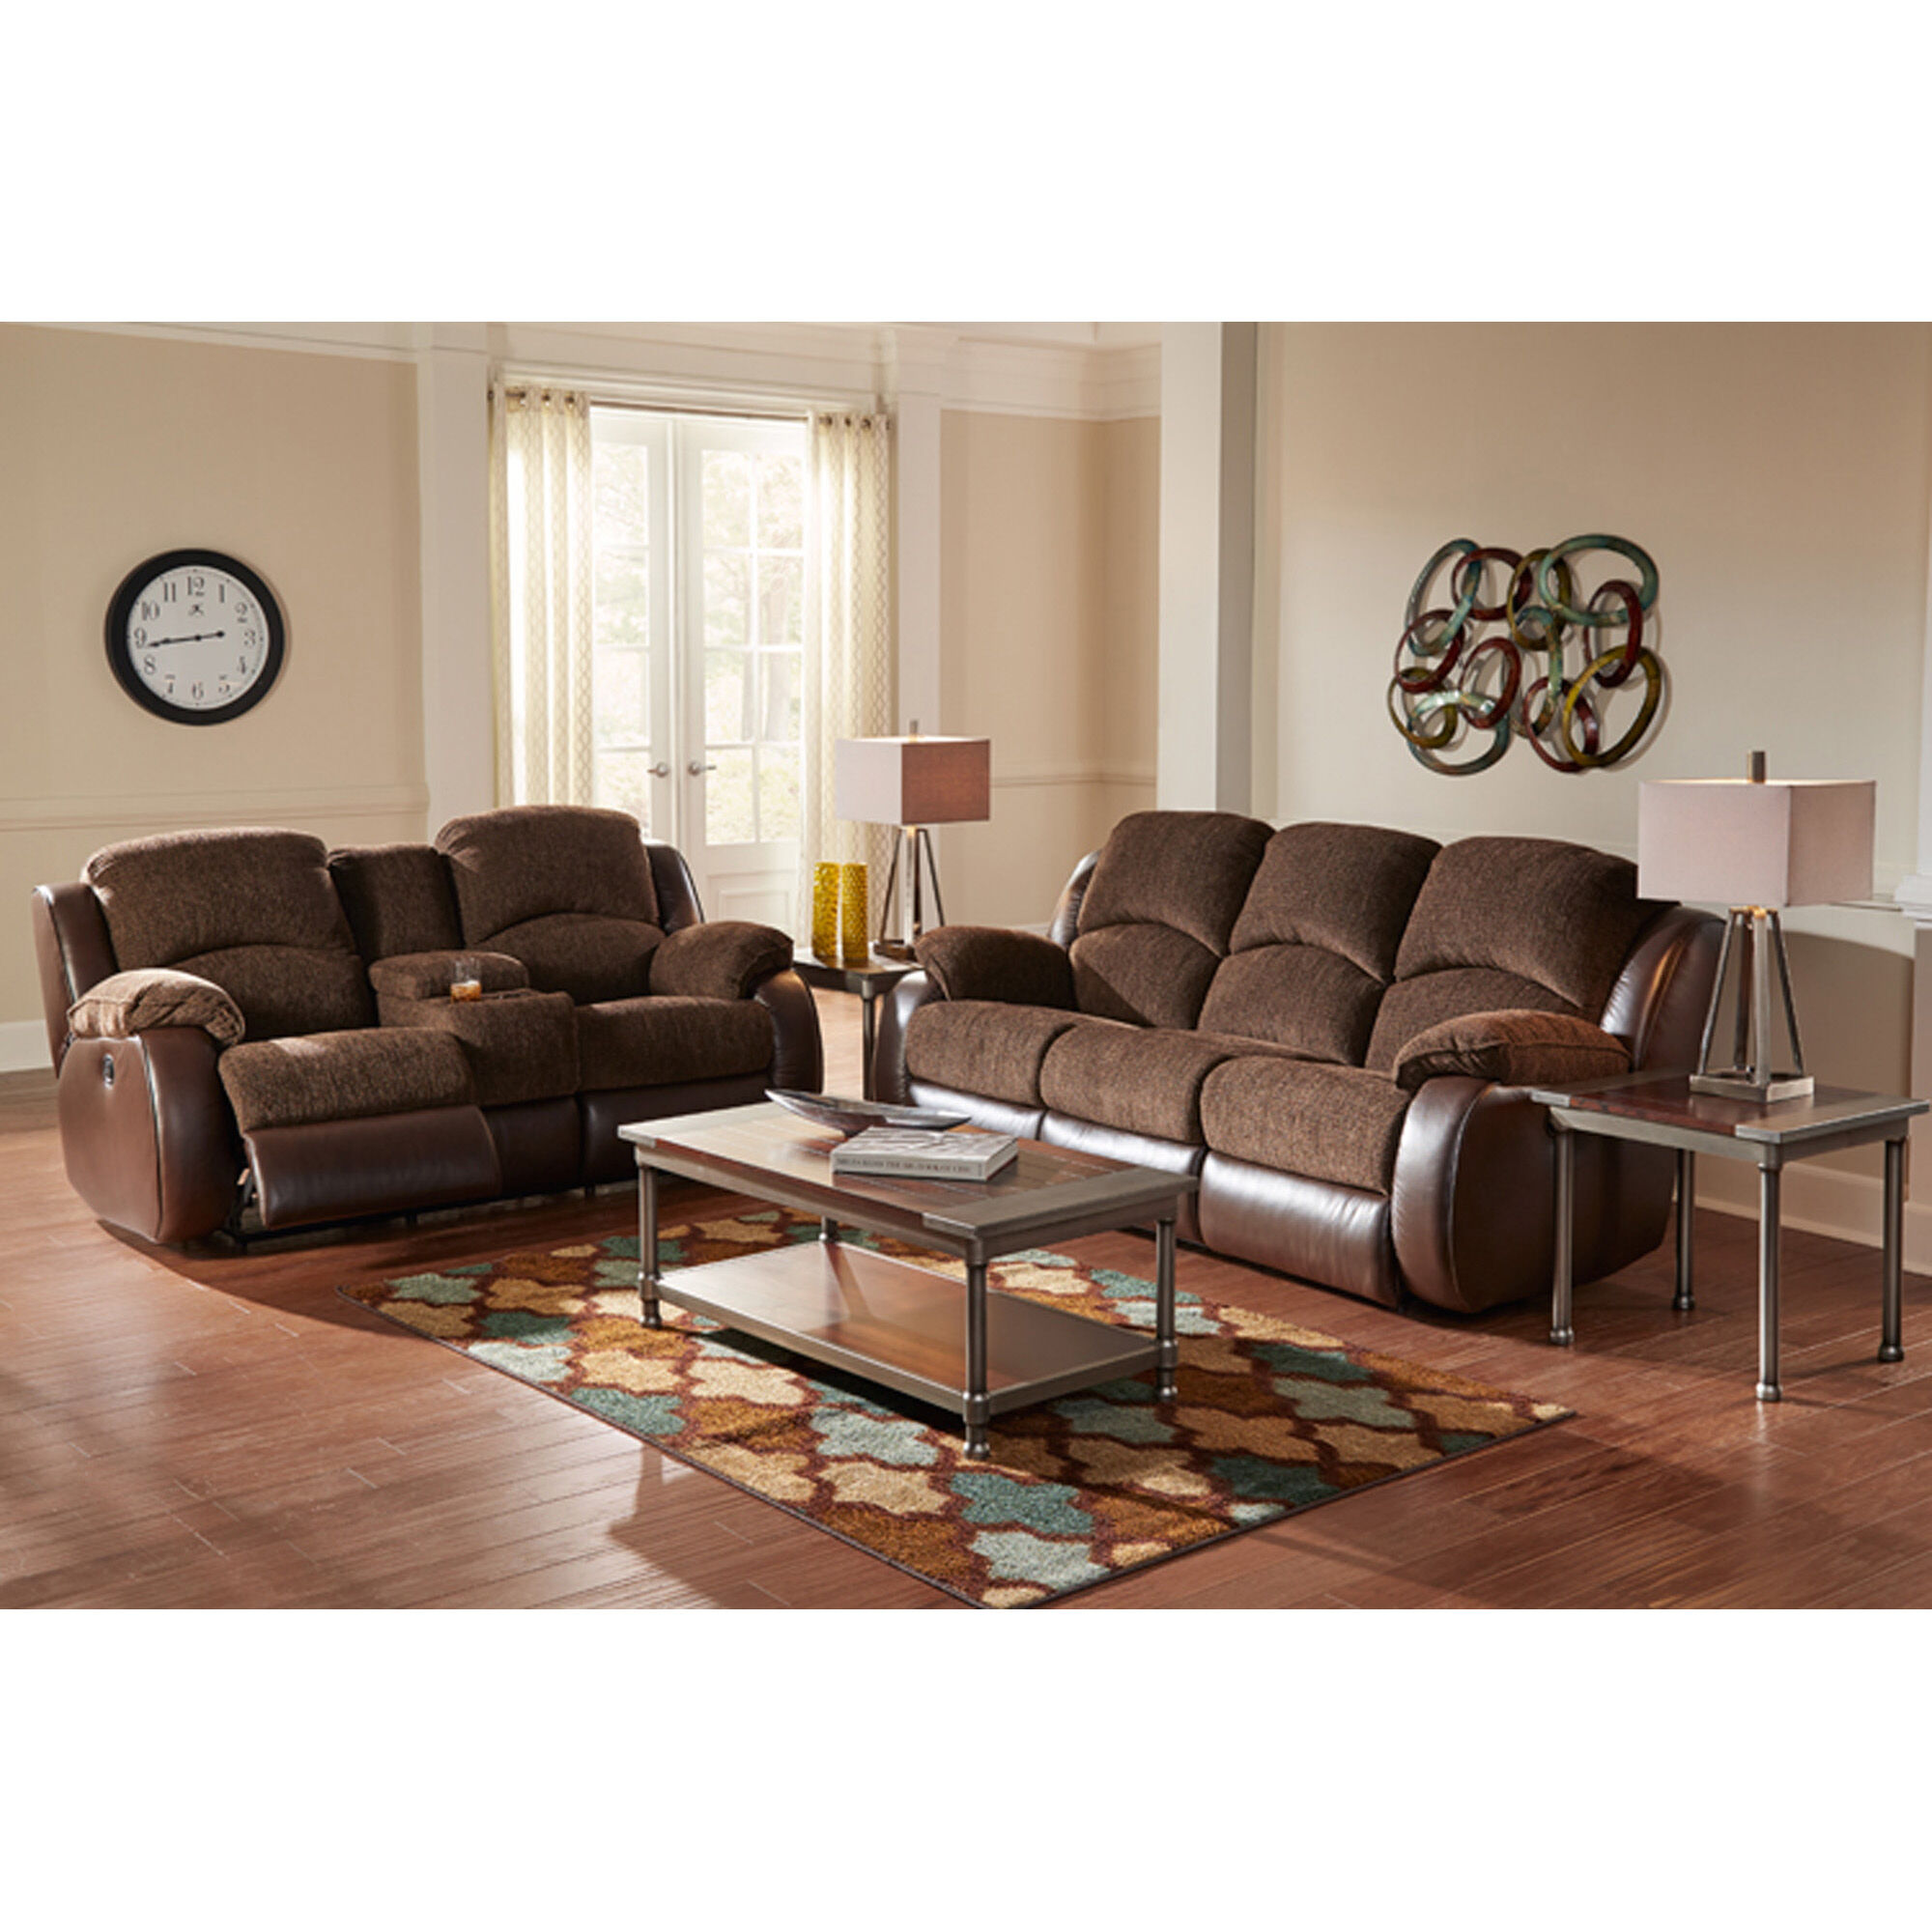 Delicieux 7 Piece Memphis Reclining Living Room Collection